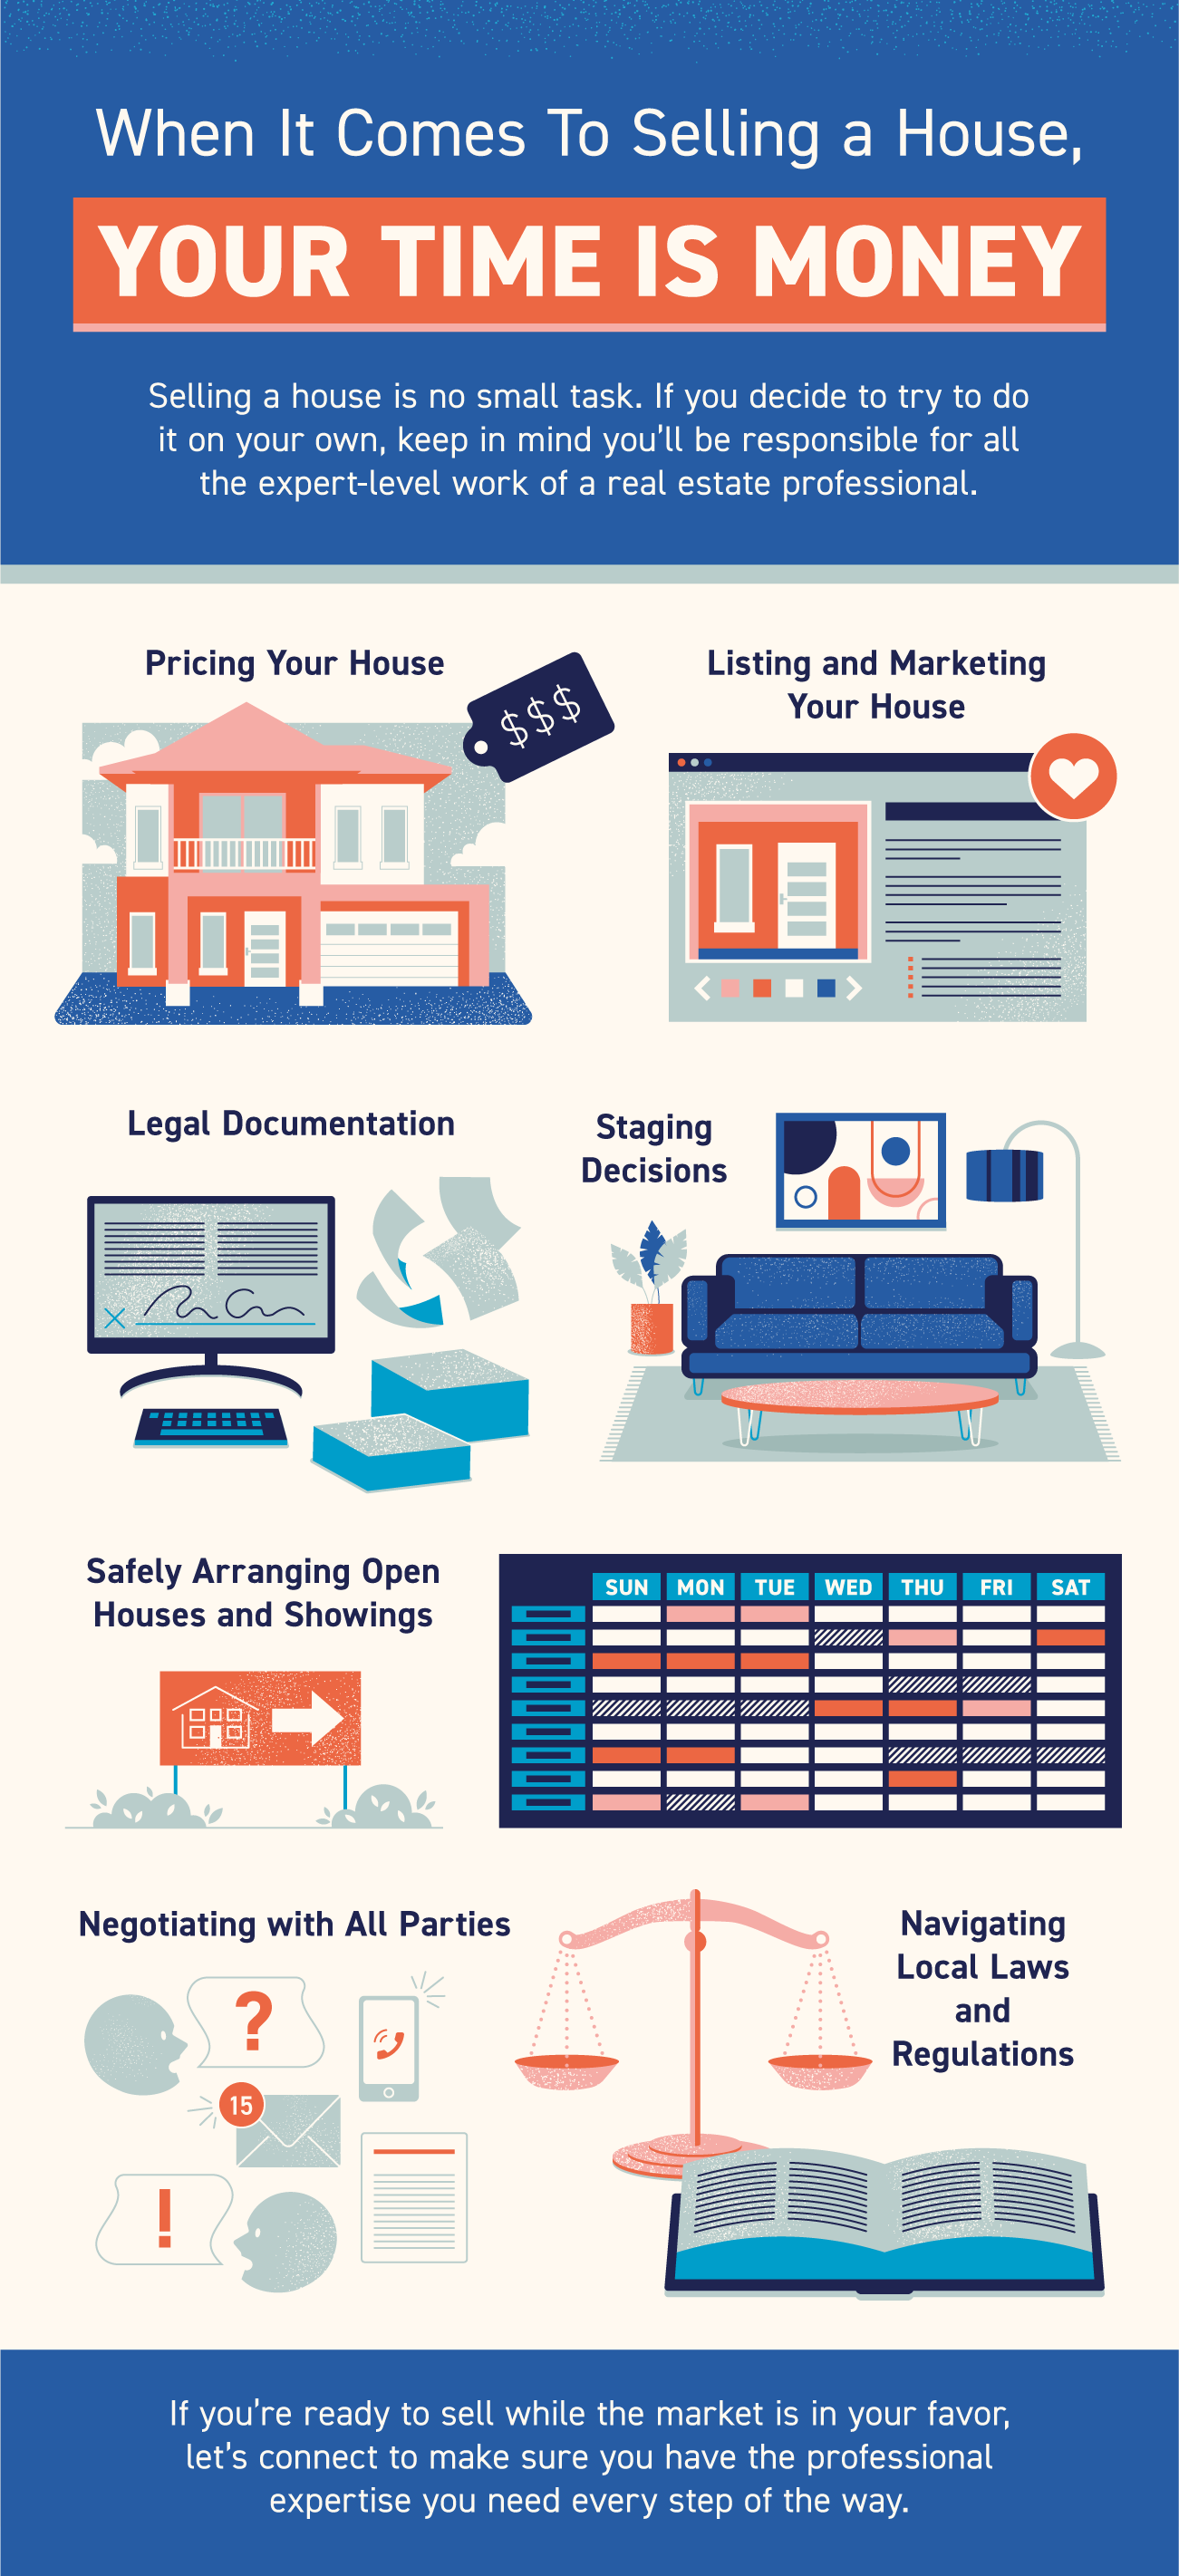 When It Comes To Selling a House Your Time Is Money [INFOGRAPHIC].png